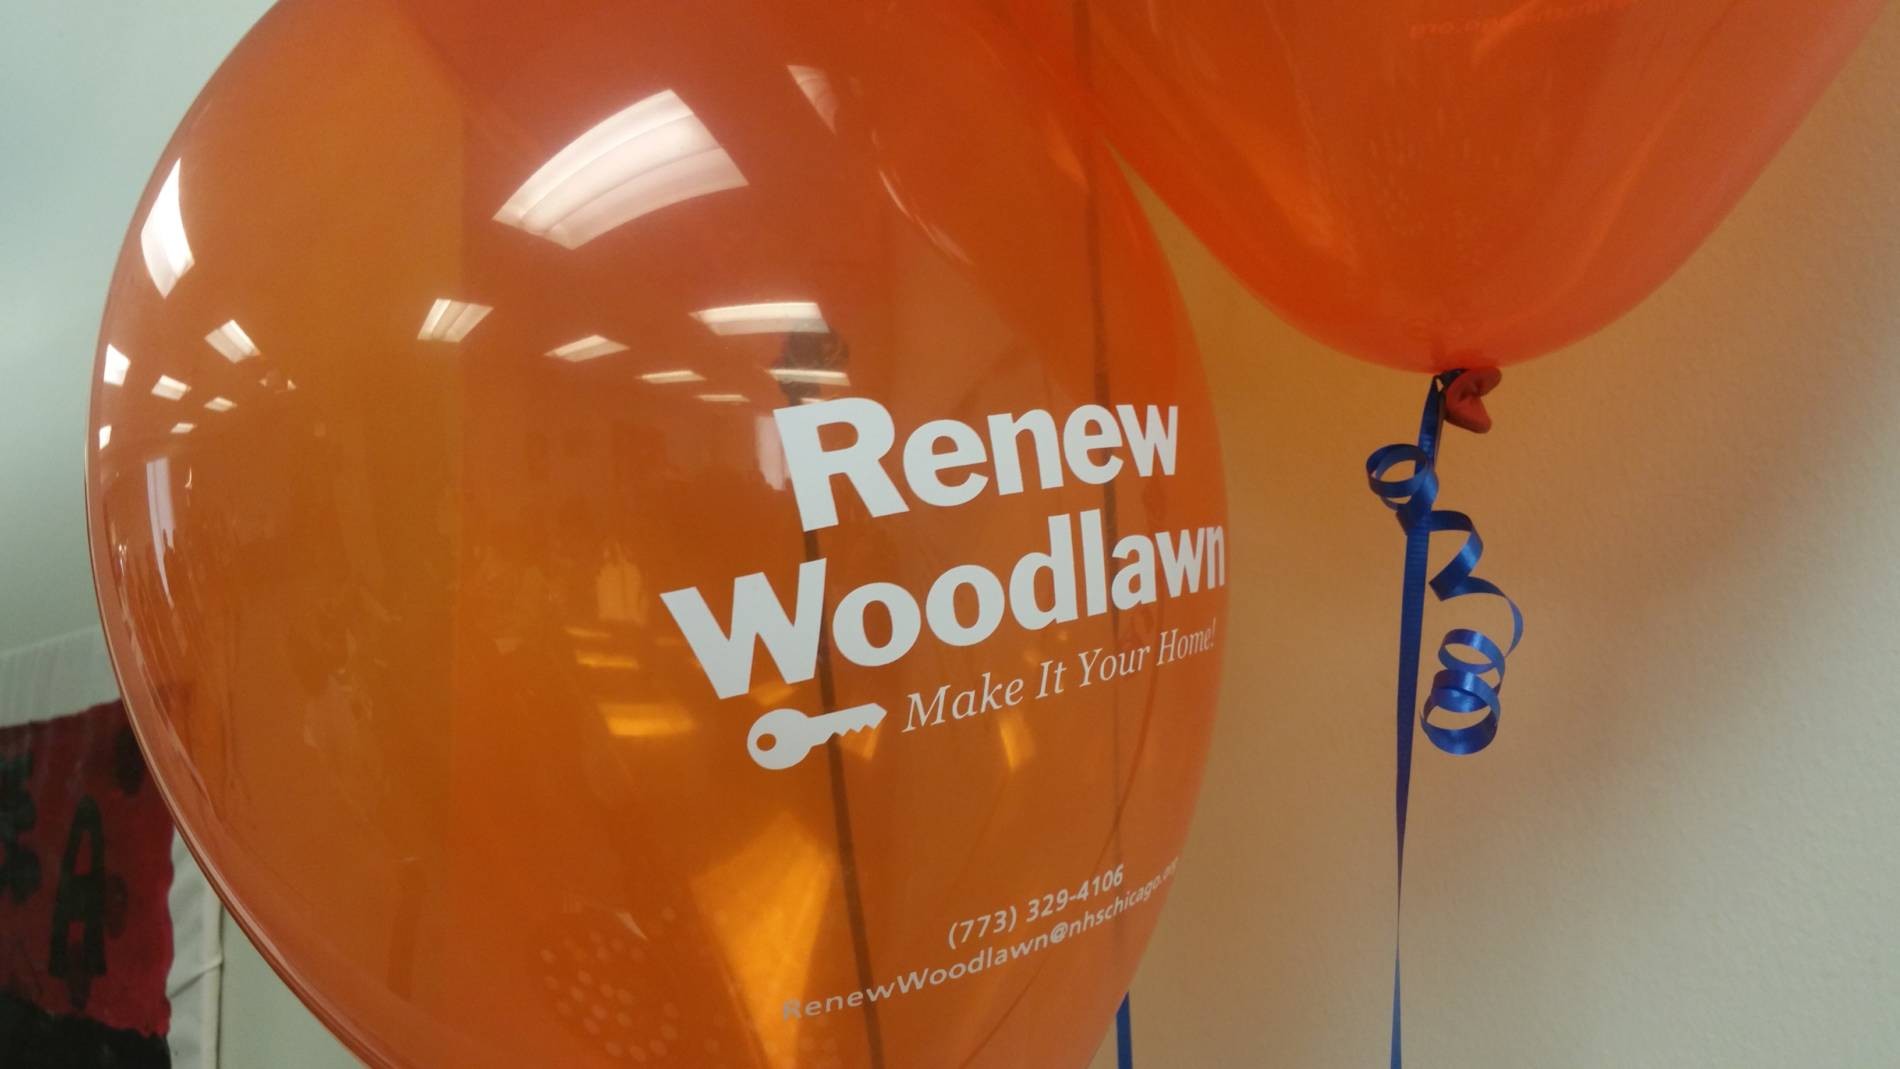 Renew Woodlawn Attracts New Homeowners to Community